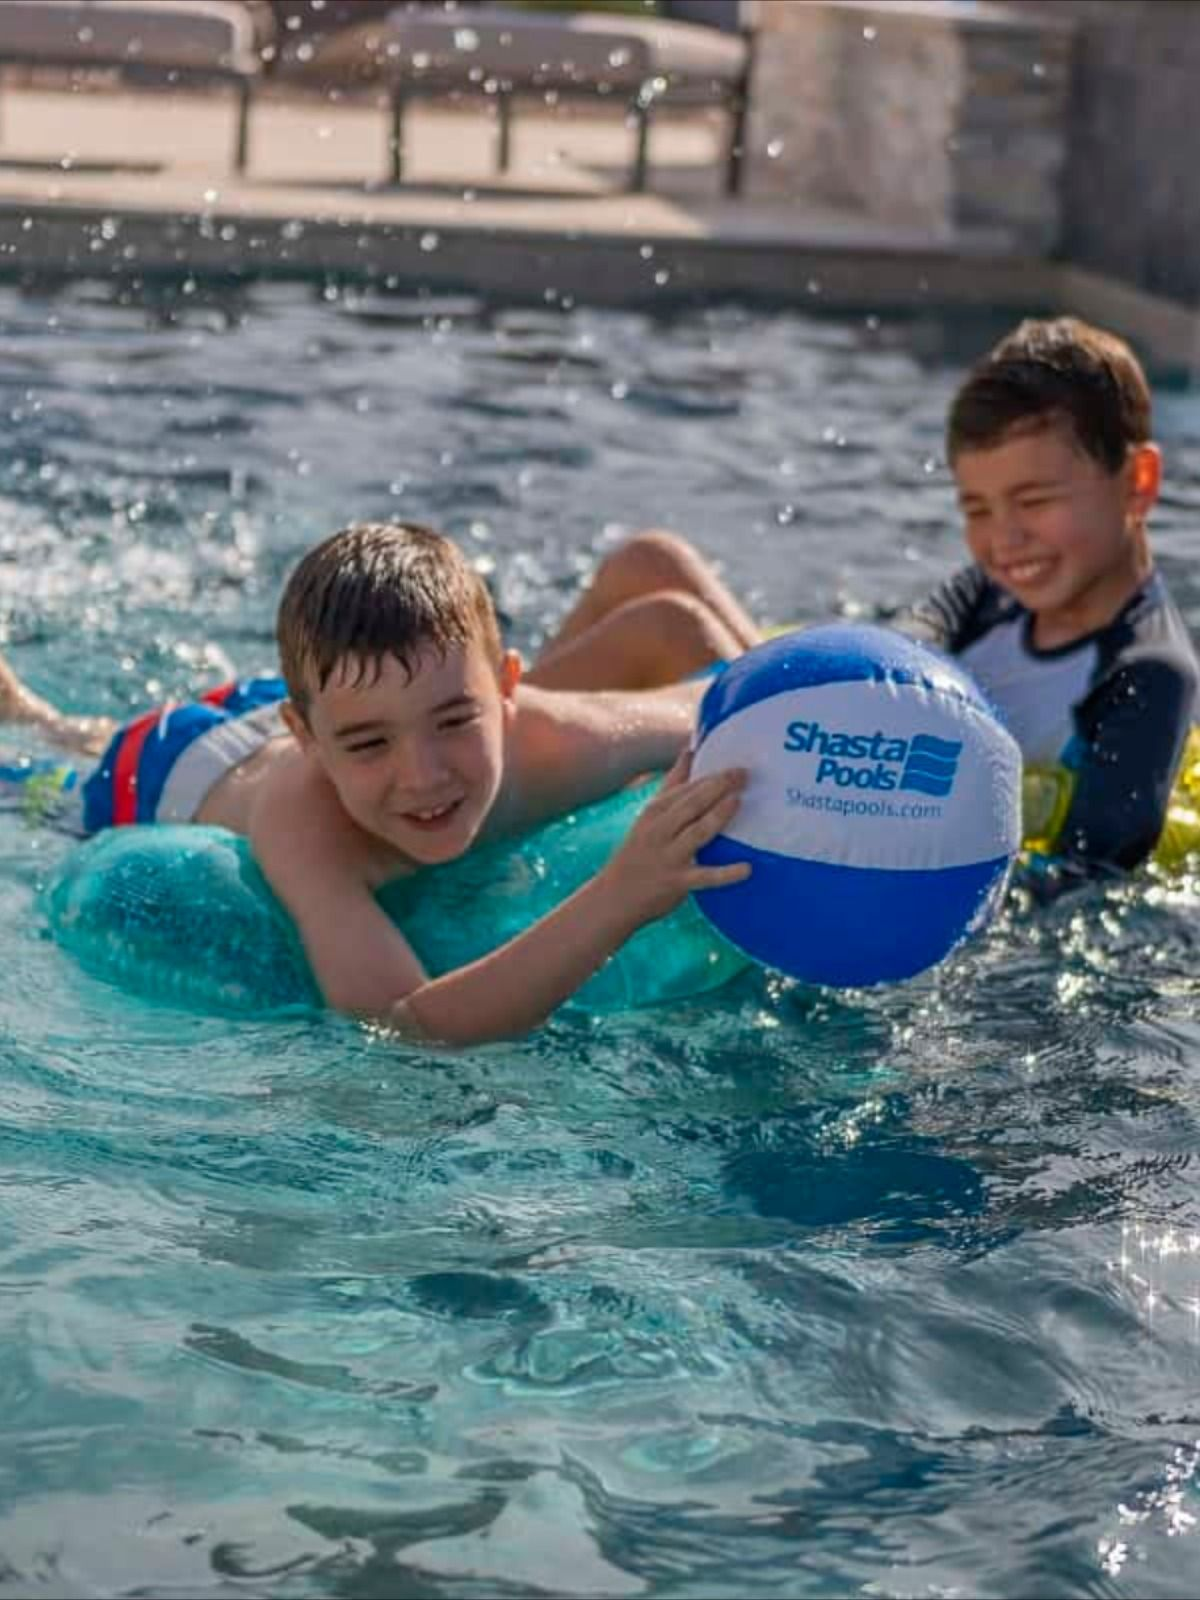 5 Fun Water Safety Games For Kids In